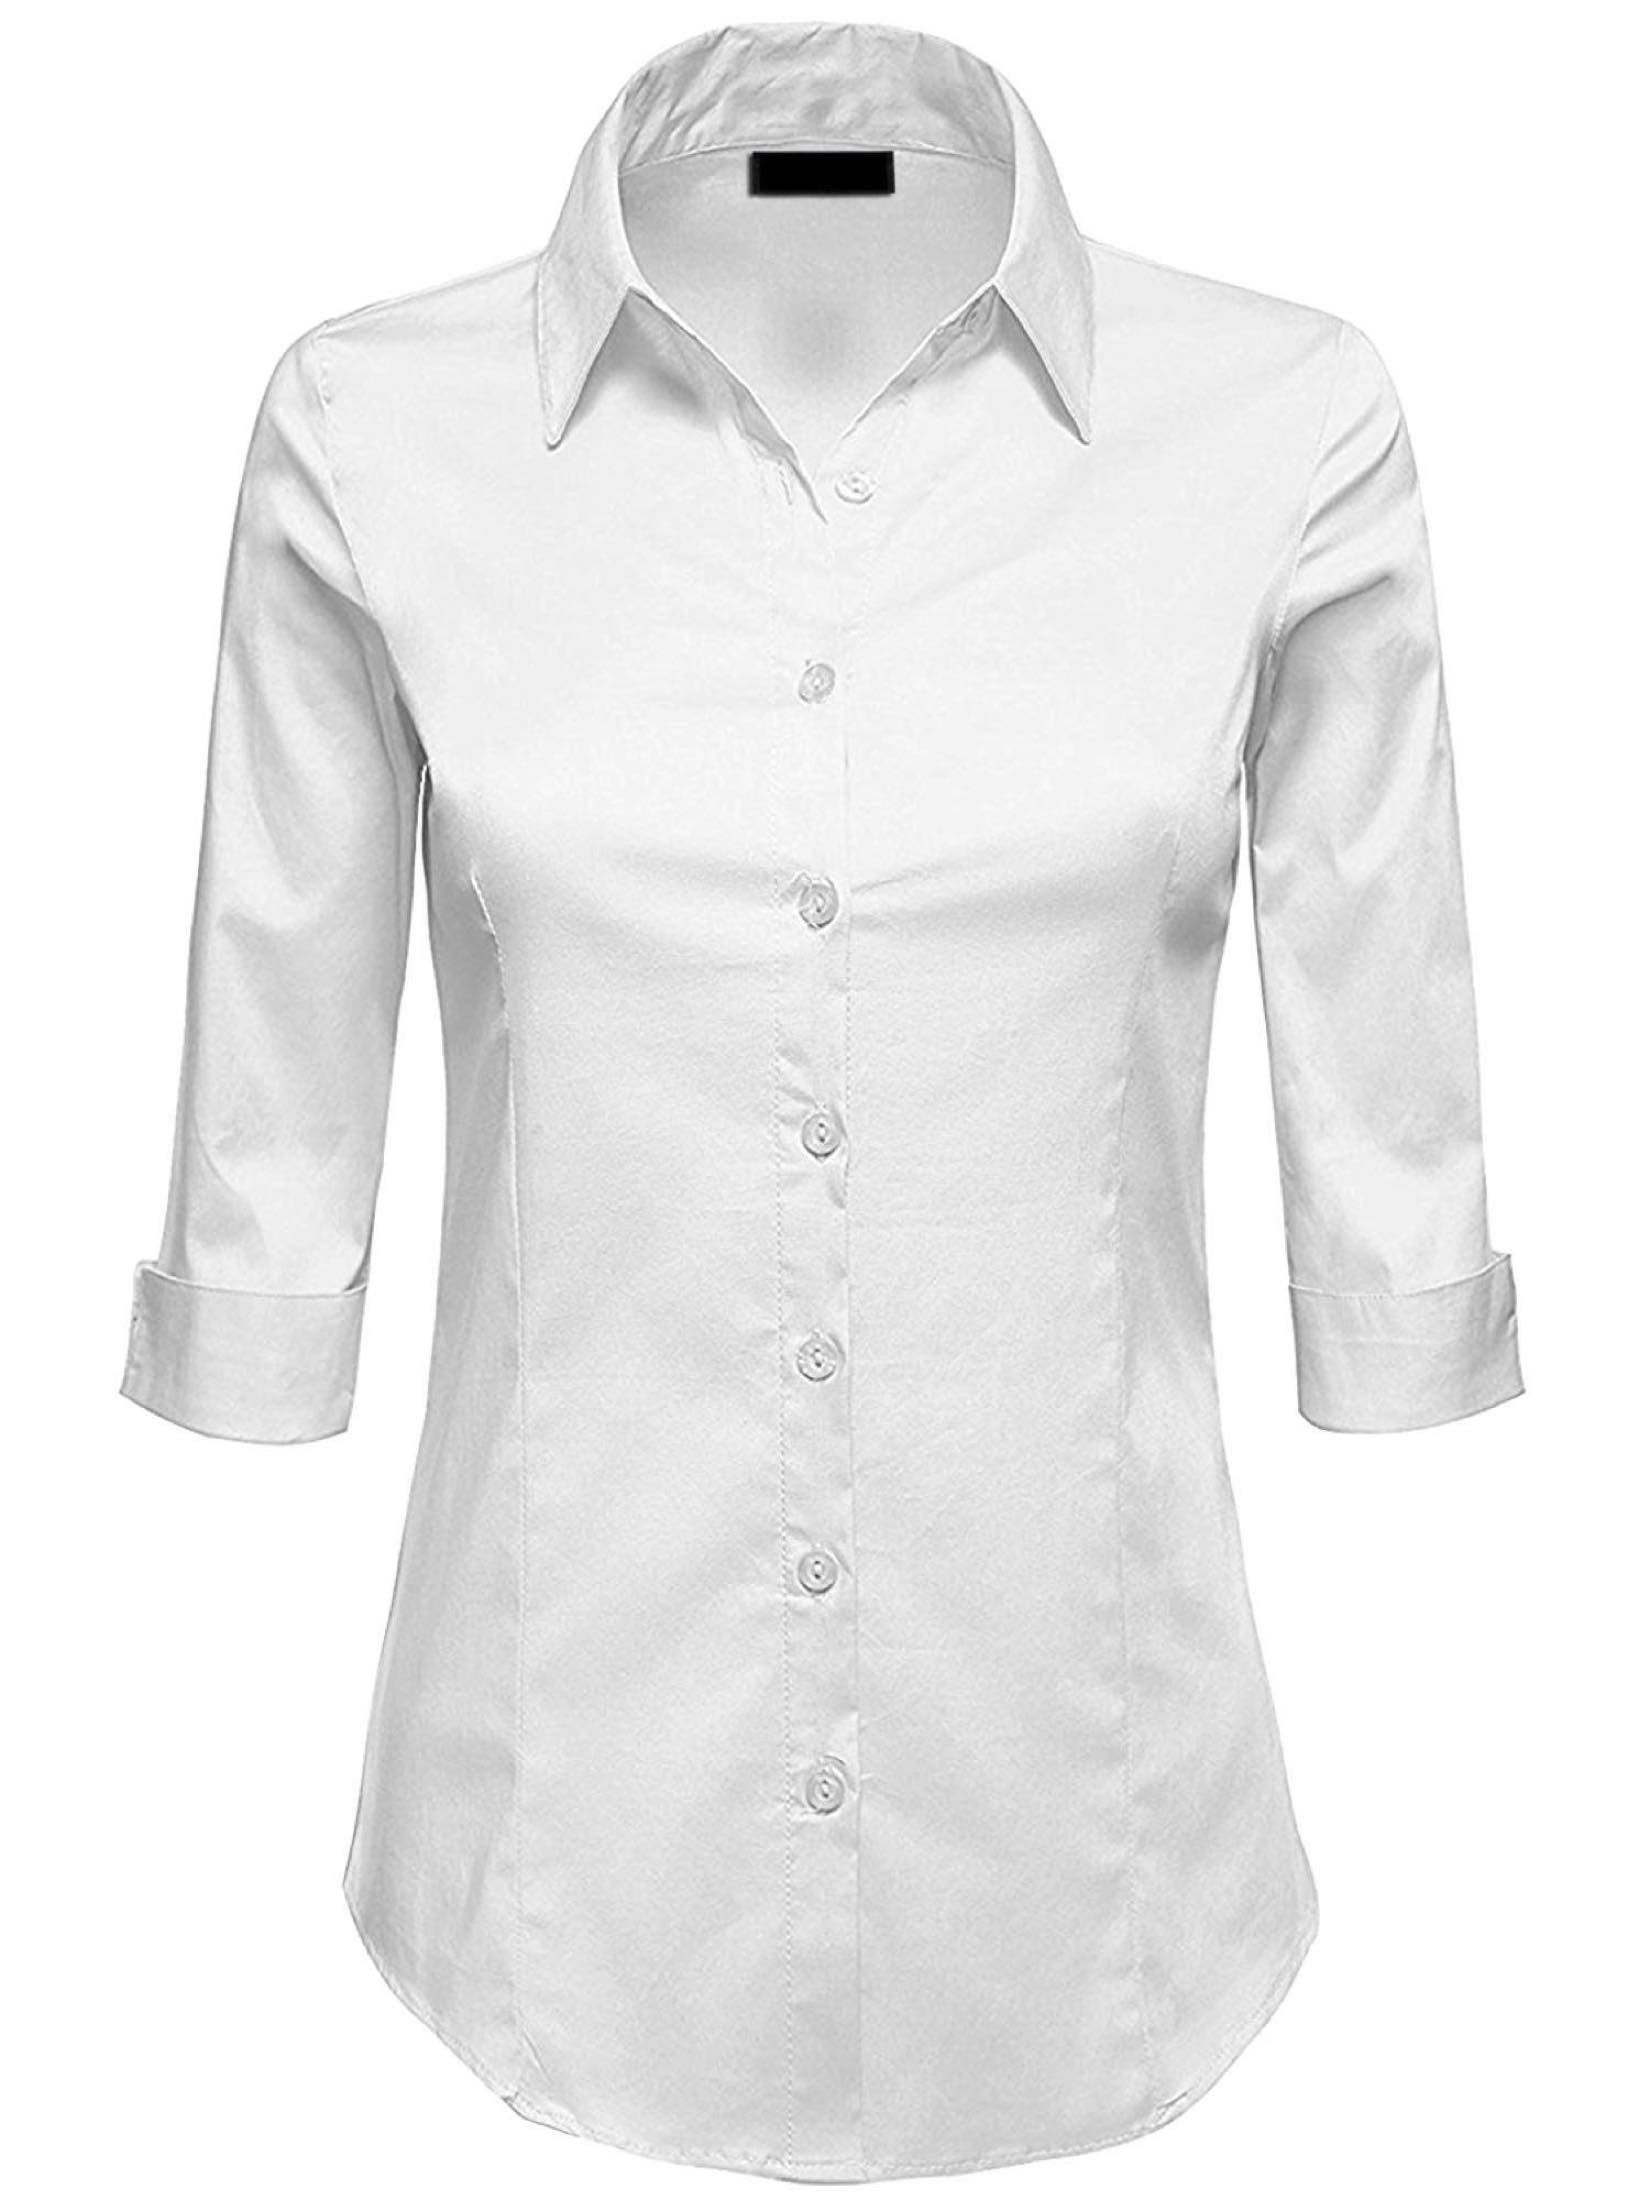 Free 2 Day Shipping Buy Mbj Wt1947 Womens 3 4 Sleeve Tailored Button Down Shirts M Bright Whit Women Shirts Blouse Women S Button Down Shirt Blouses For Women [ 2200 x 1650 Pixel ]